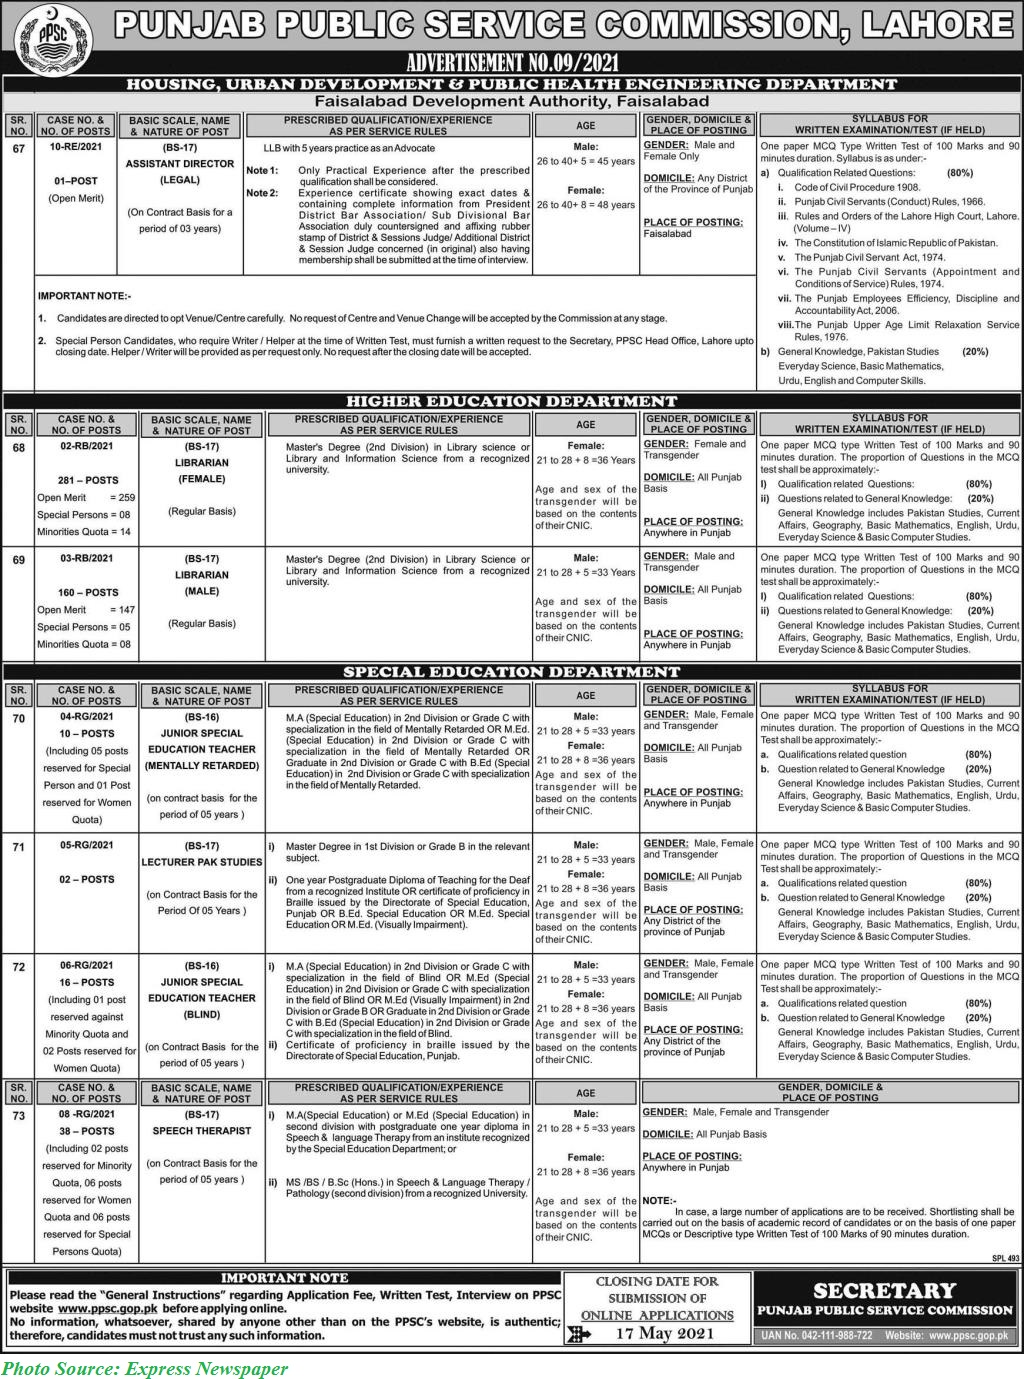 PPSC Jobs 2021 - 500+ Posts announced in Latest PPSC Advertisement No. 09/021 Apply Online